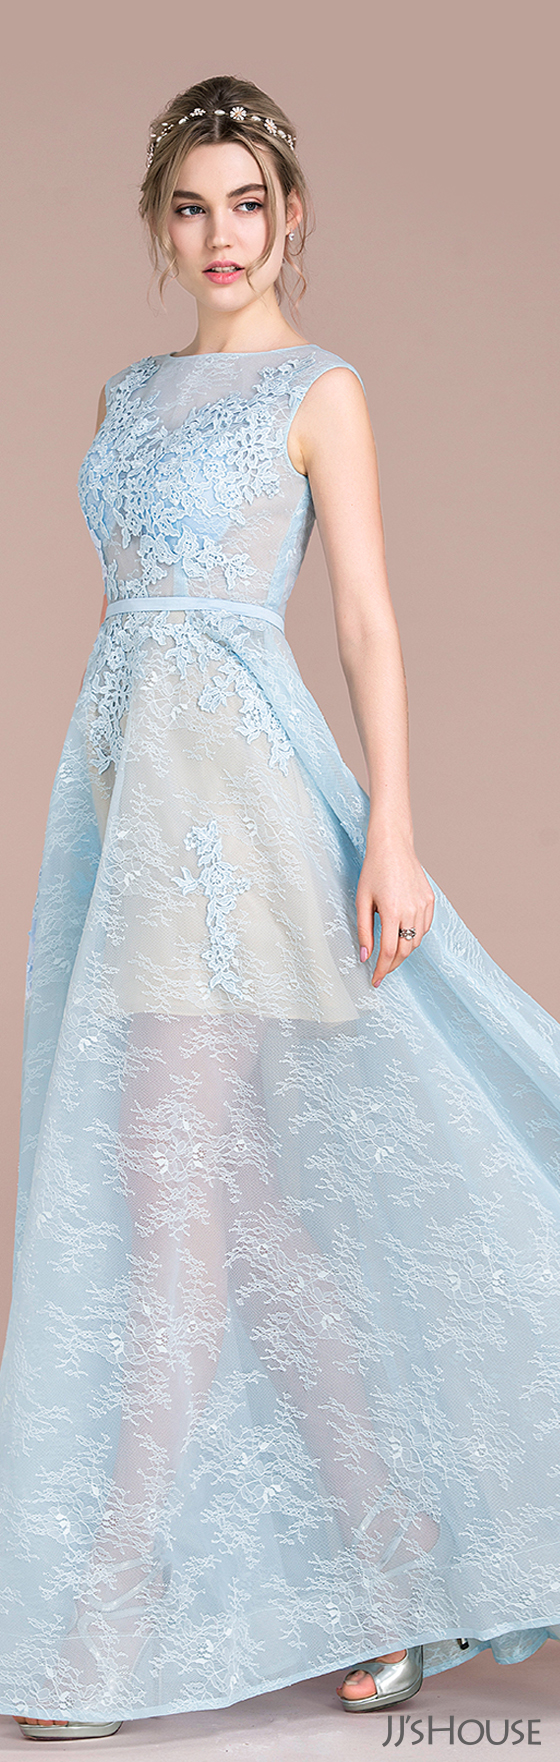 A-Line/Princess Scoop Neck Floor-Length Tulle Lace Prom Dresses ...